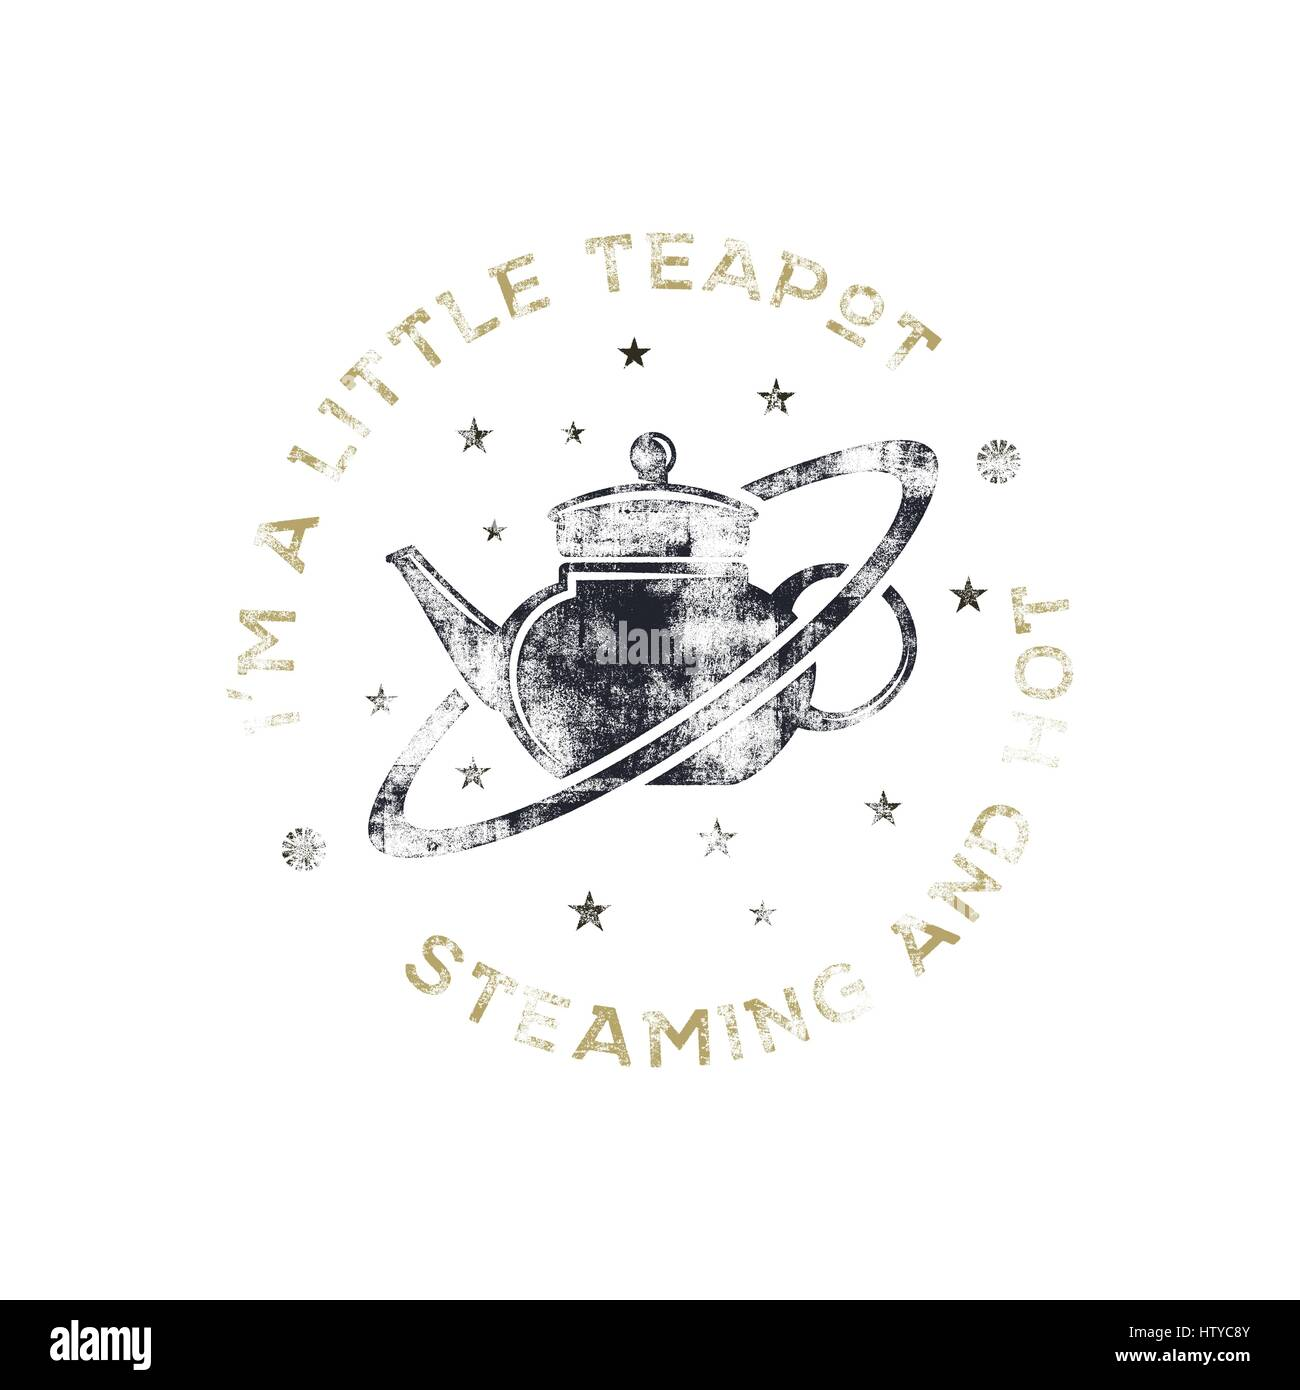 Vintage science poster and background with Russell's teapot and typography elements. Science background theme. - Stock Image